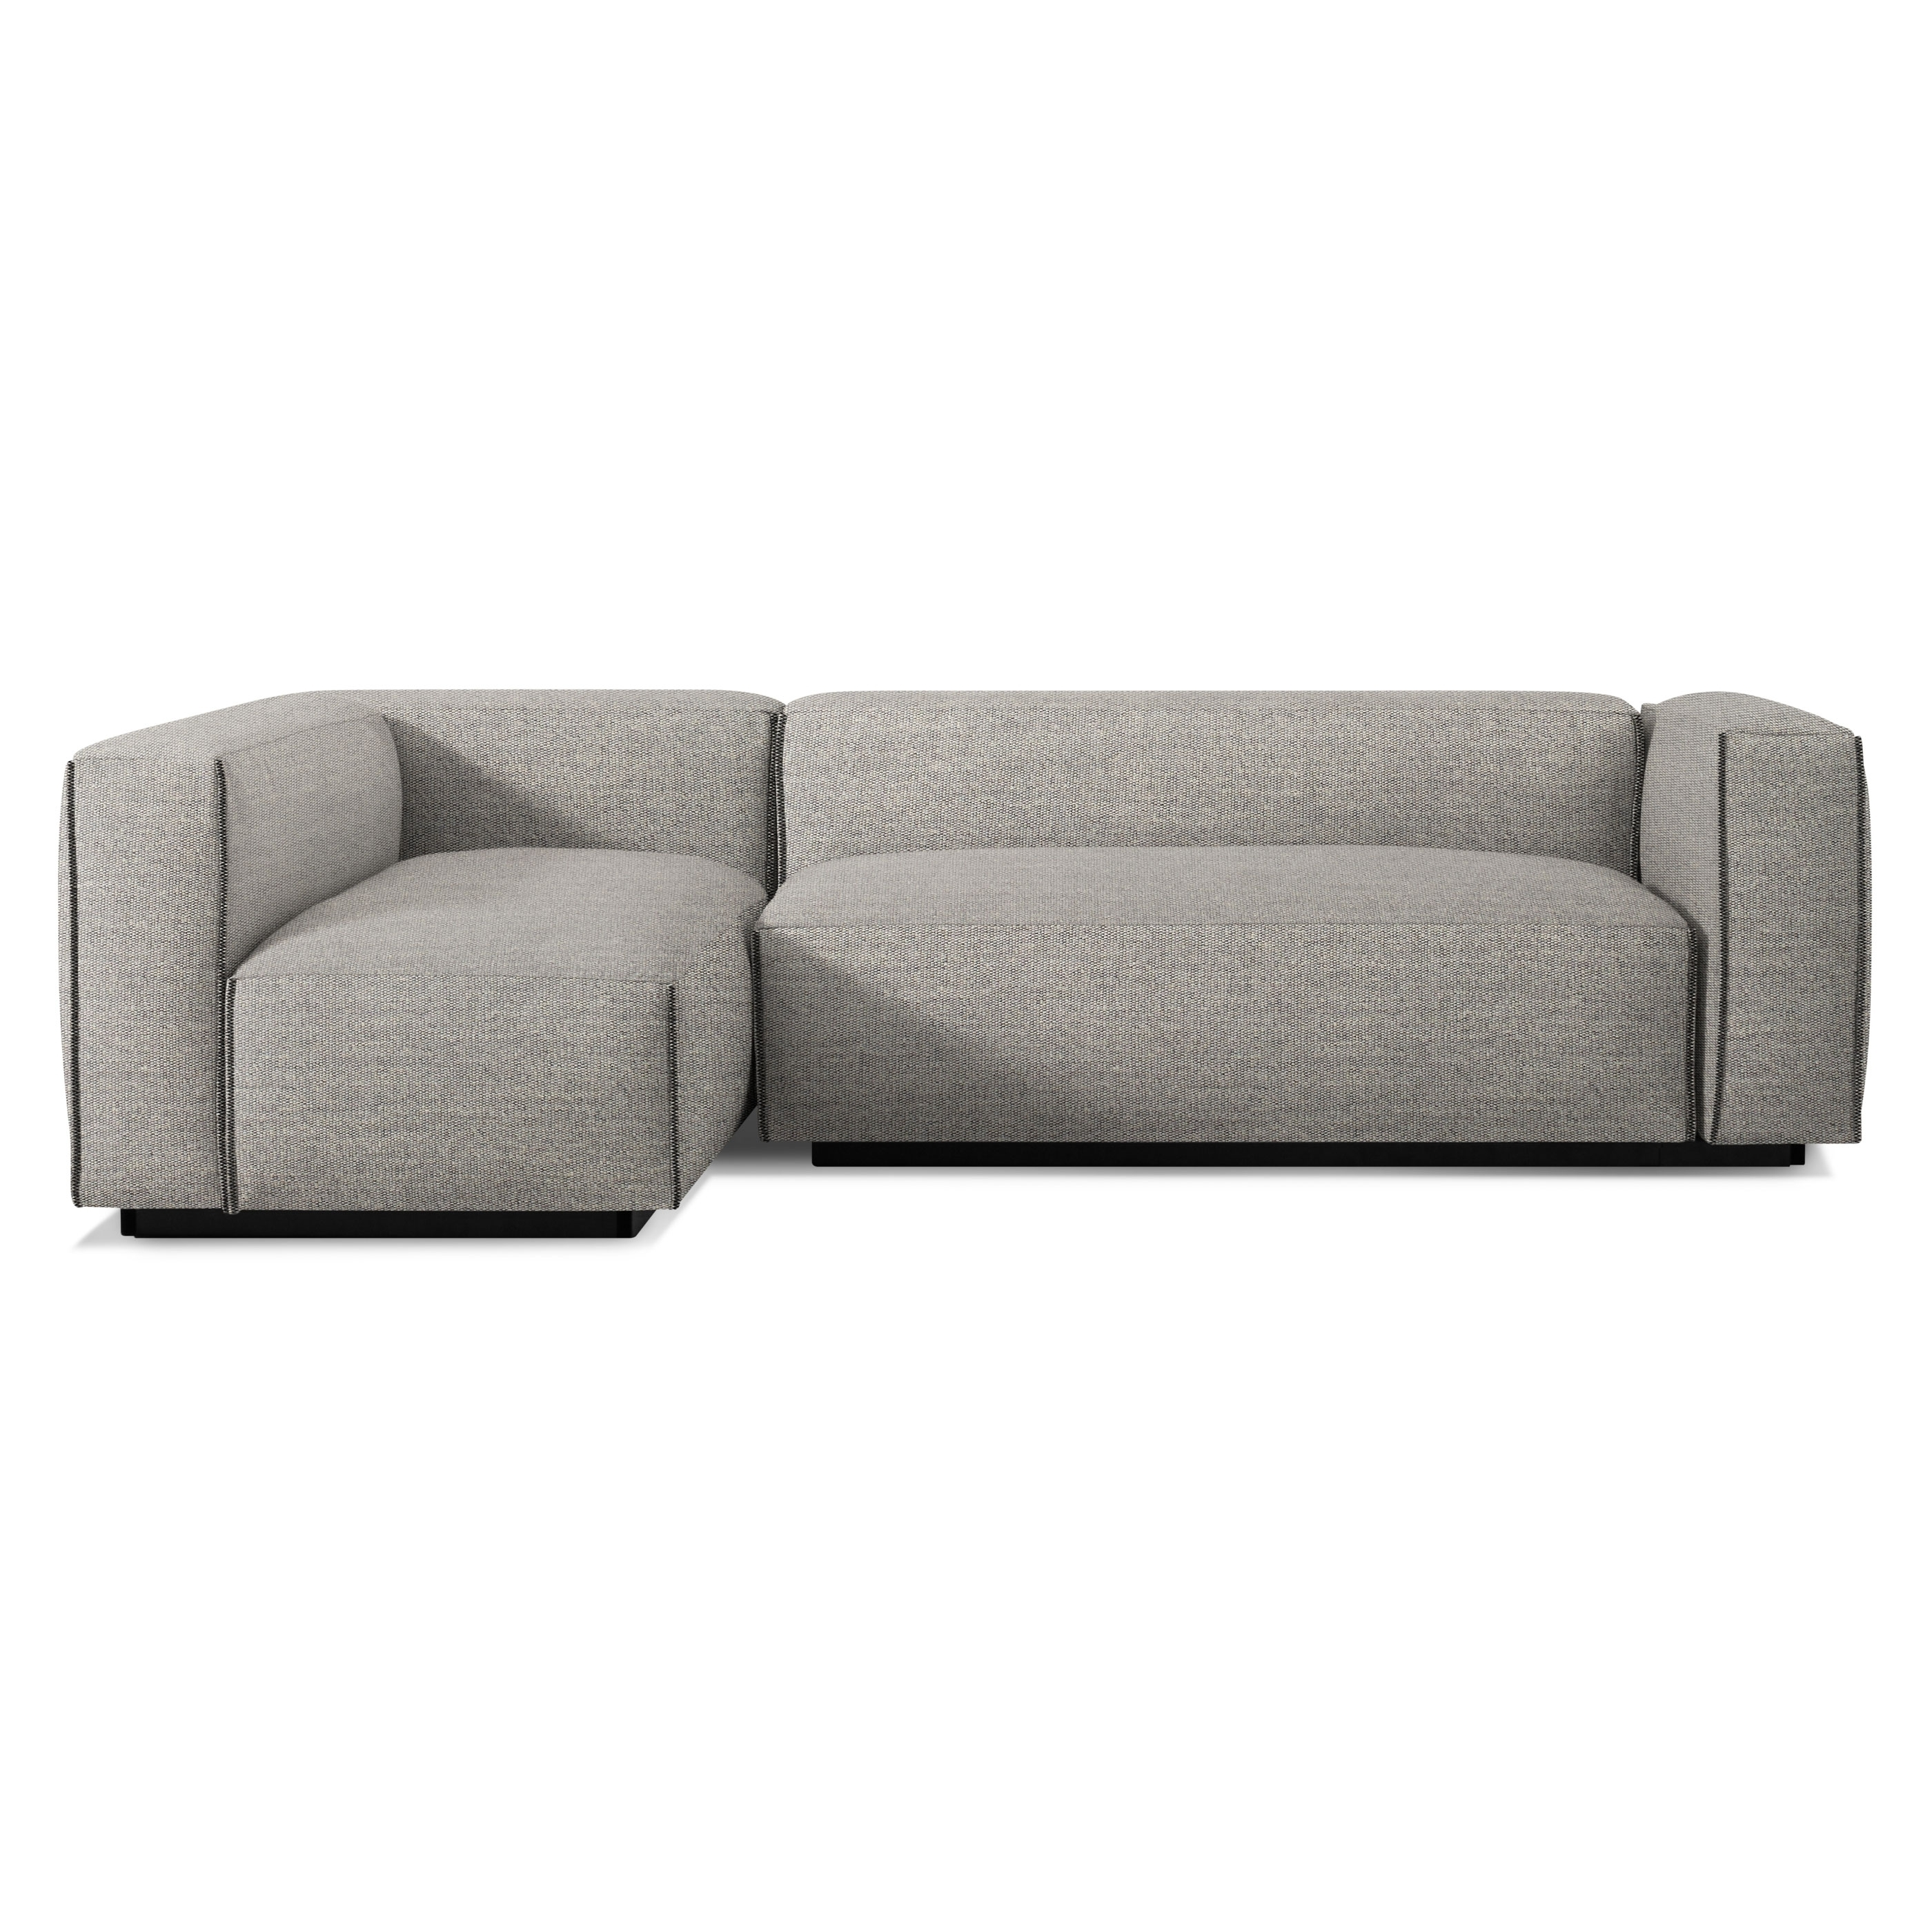 Sydney sectional sofas within favorite small sectional sofa modern sectional sofas gallery 13 of